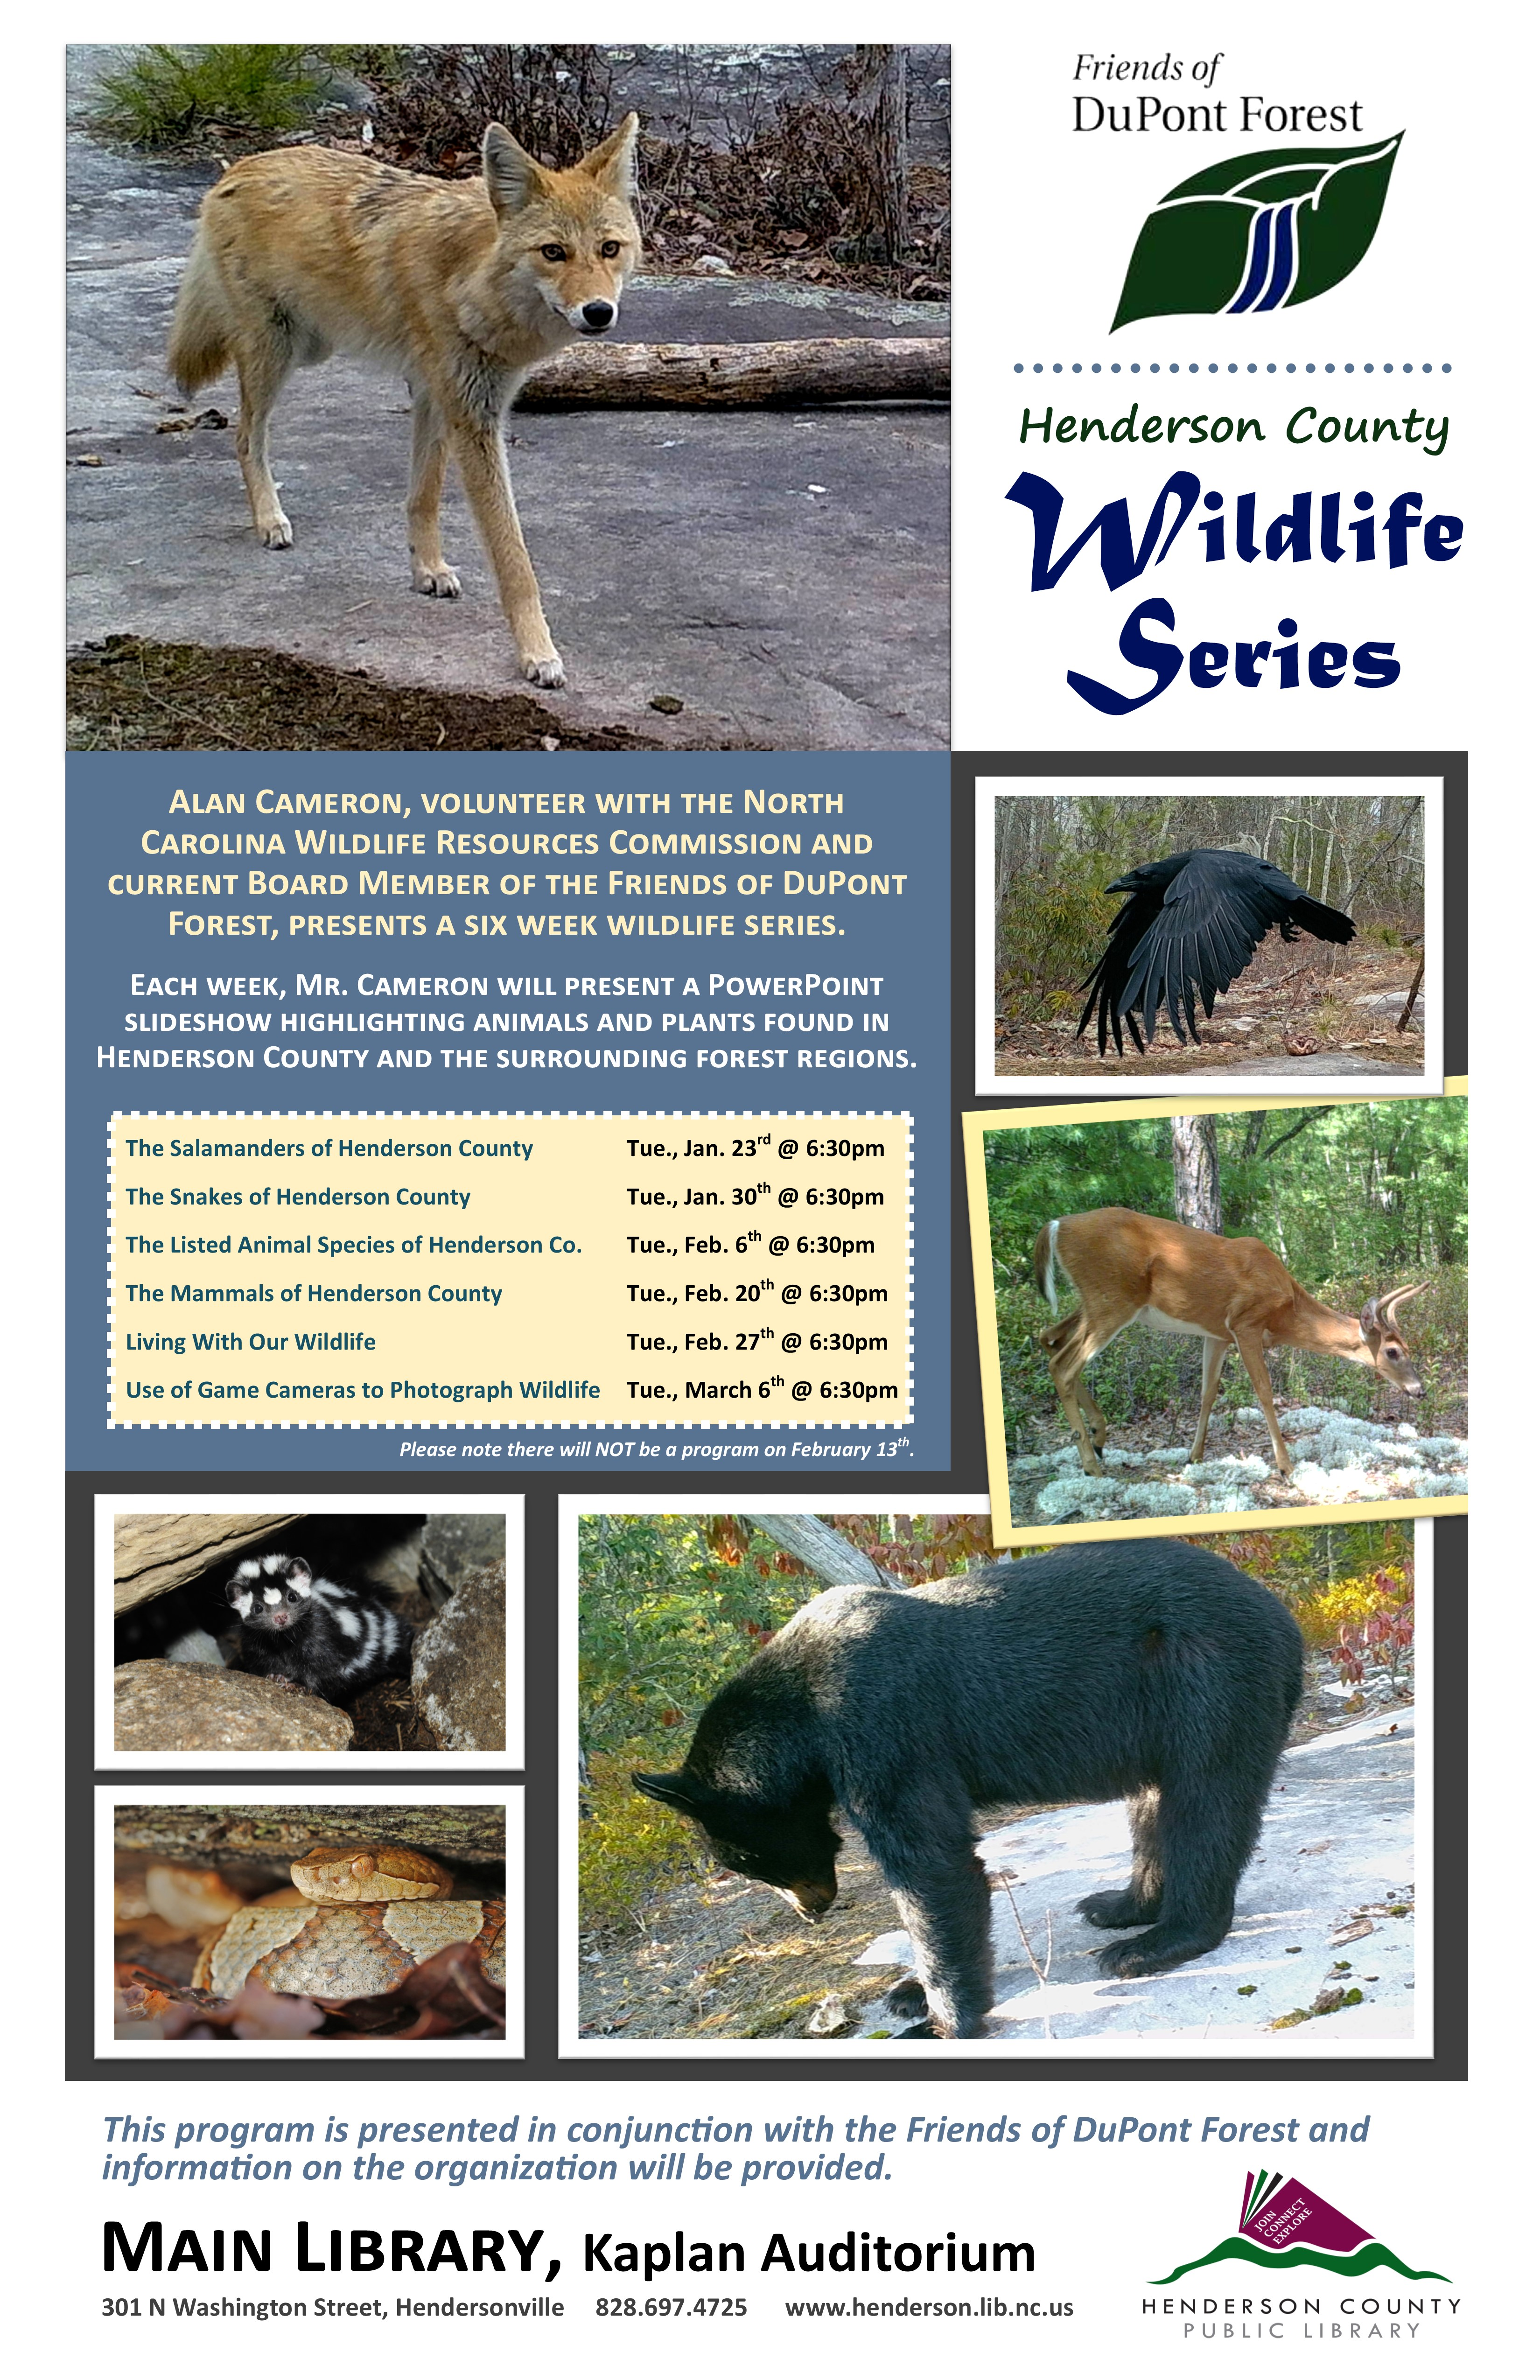 Henderson County Wildllife Series:  The Snakes of Henderson County